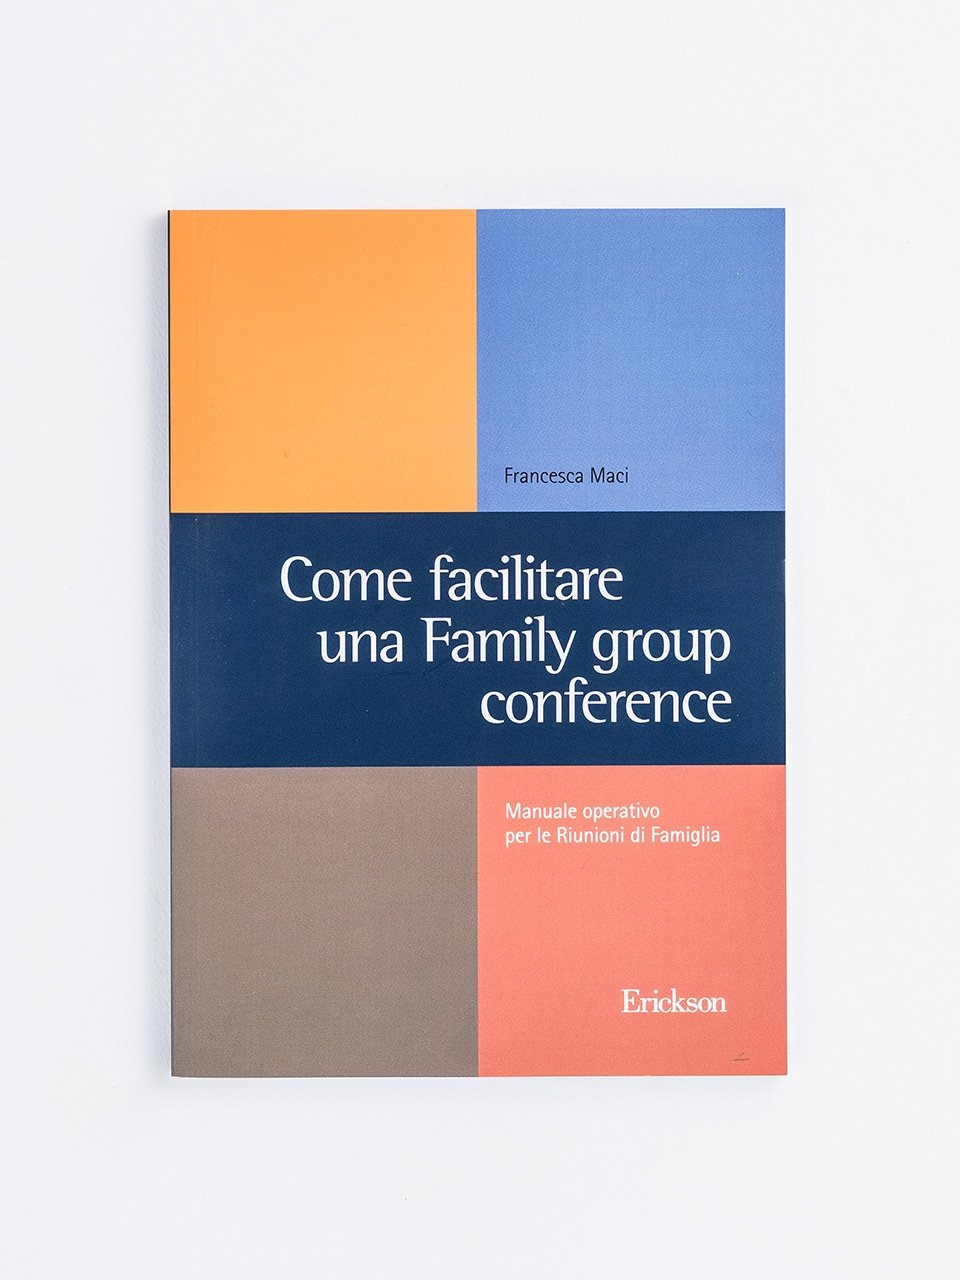 Come facilitare una Family group conference - Comunicazione aumentativa  e apprendimento della l - App e software - Erickson